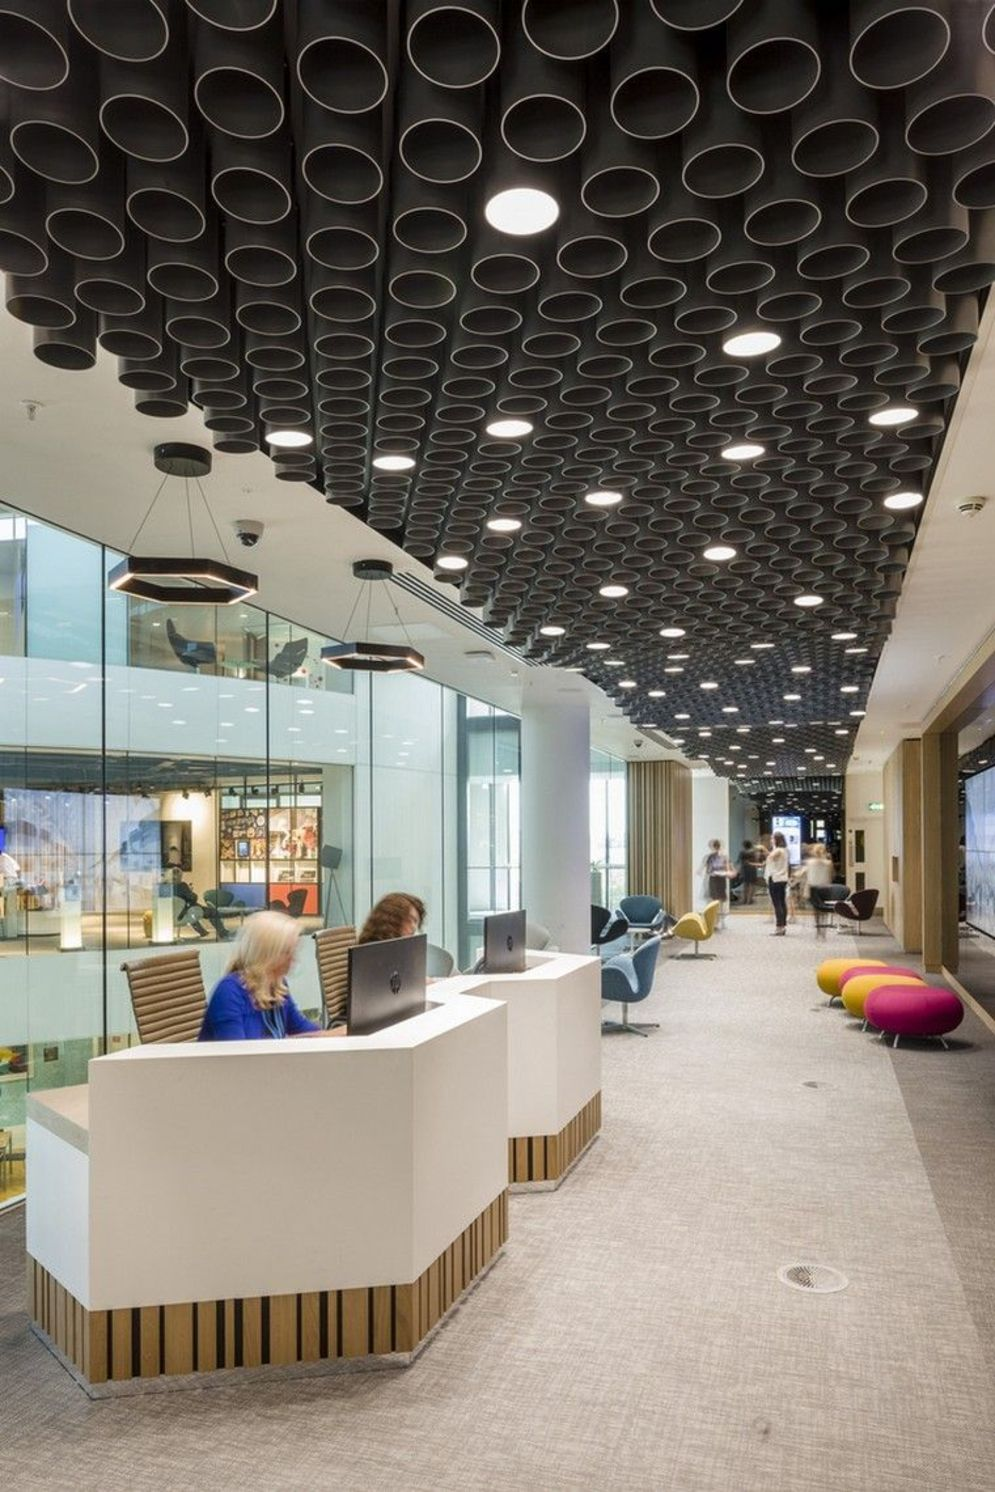 Amazing office interior ideas with unique and unconventional false ceiling designs Image 17